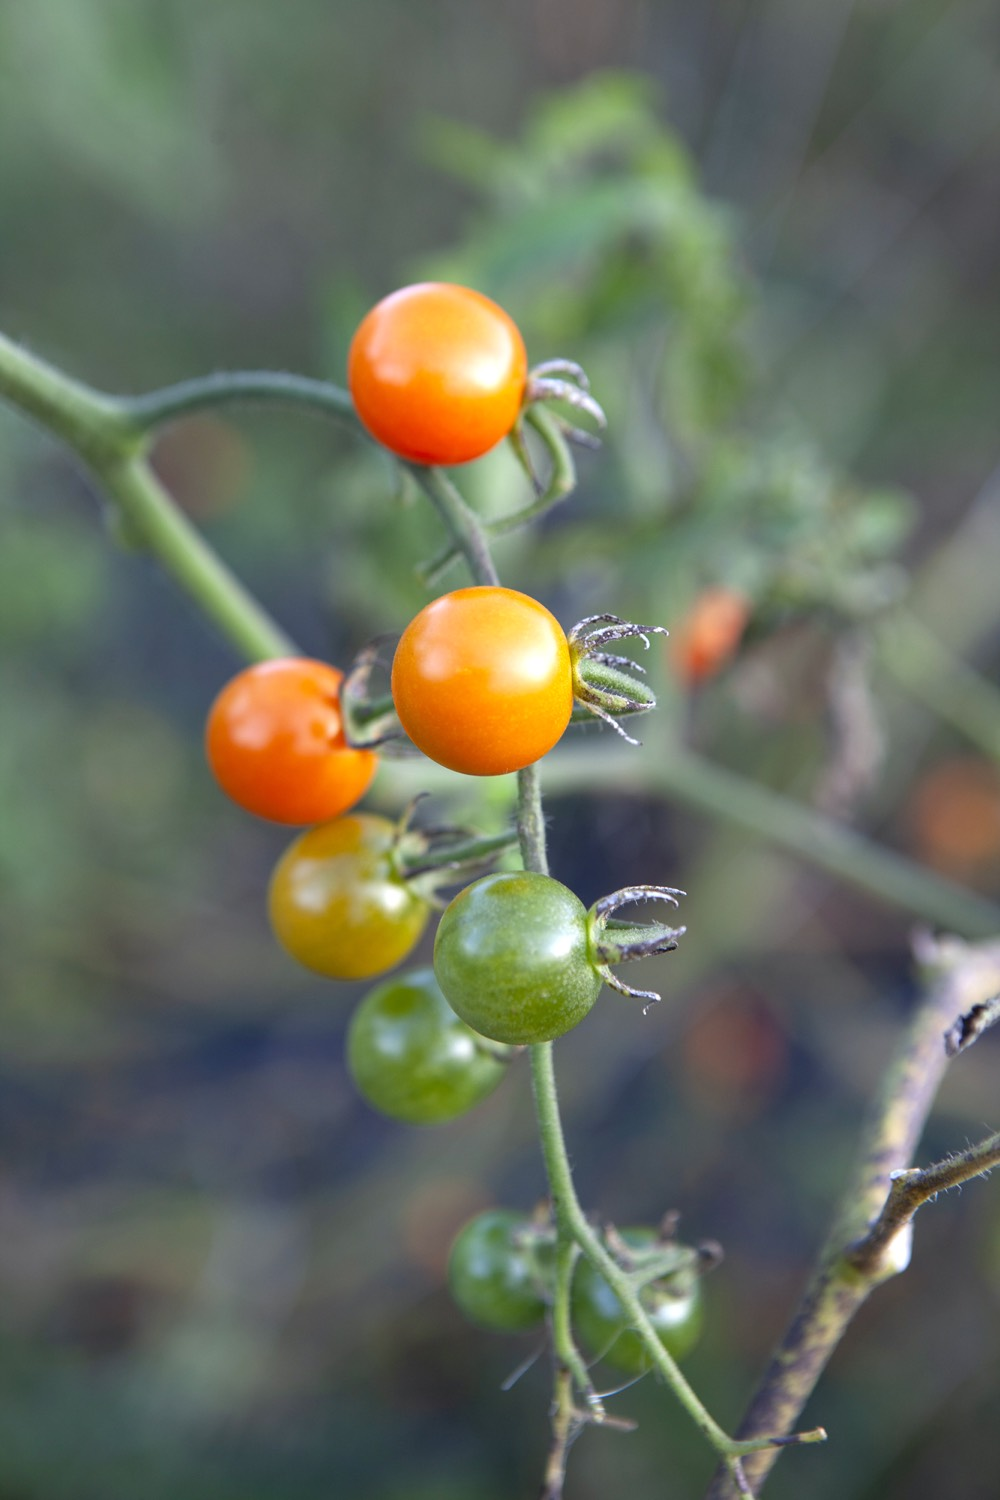 Small tomatoes on the vine at Avrom Farm.